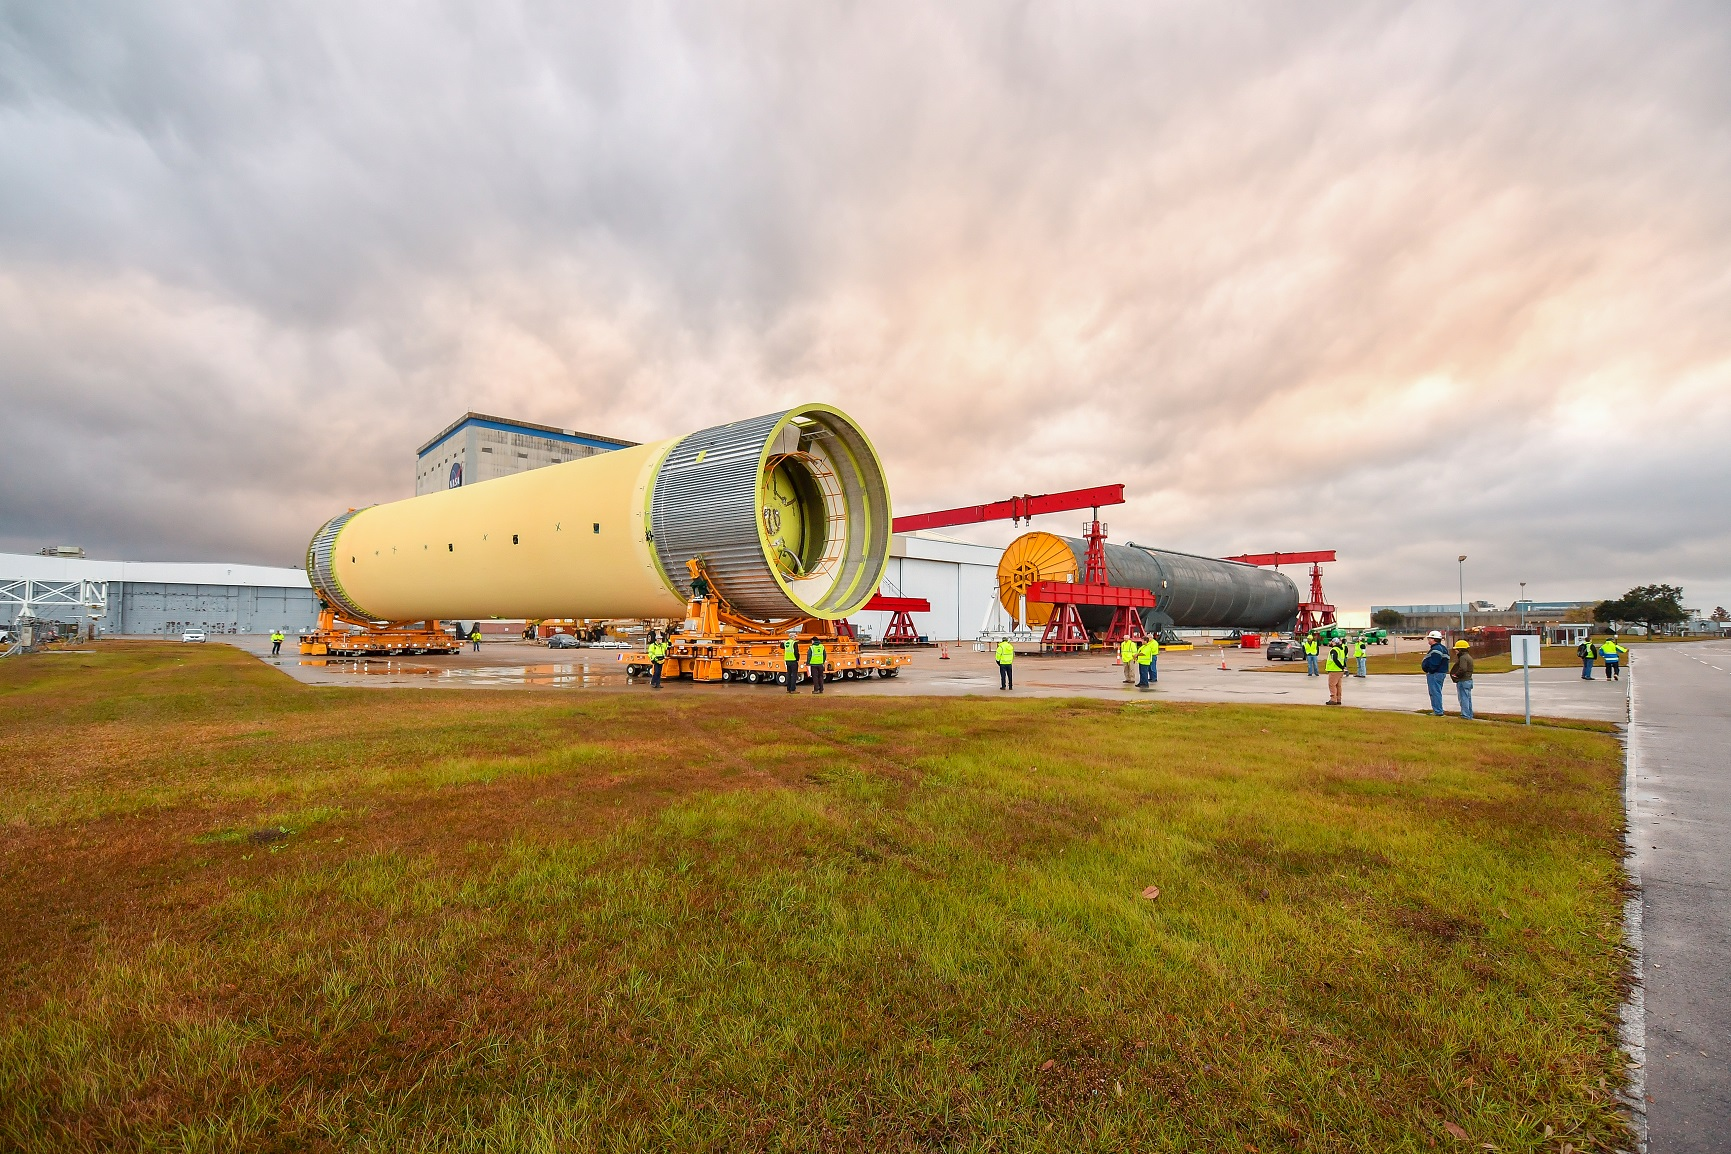 Third SLS STA headed to Marshall as limited work continues